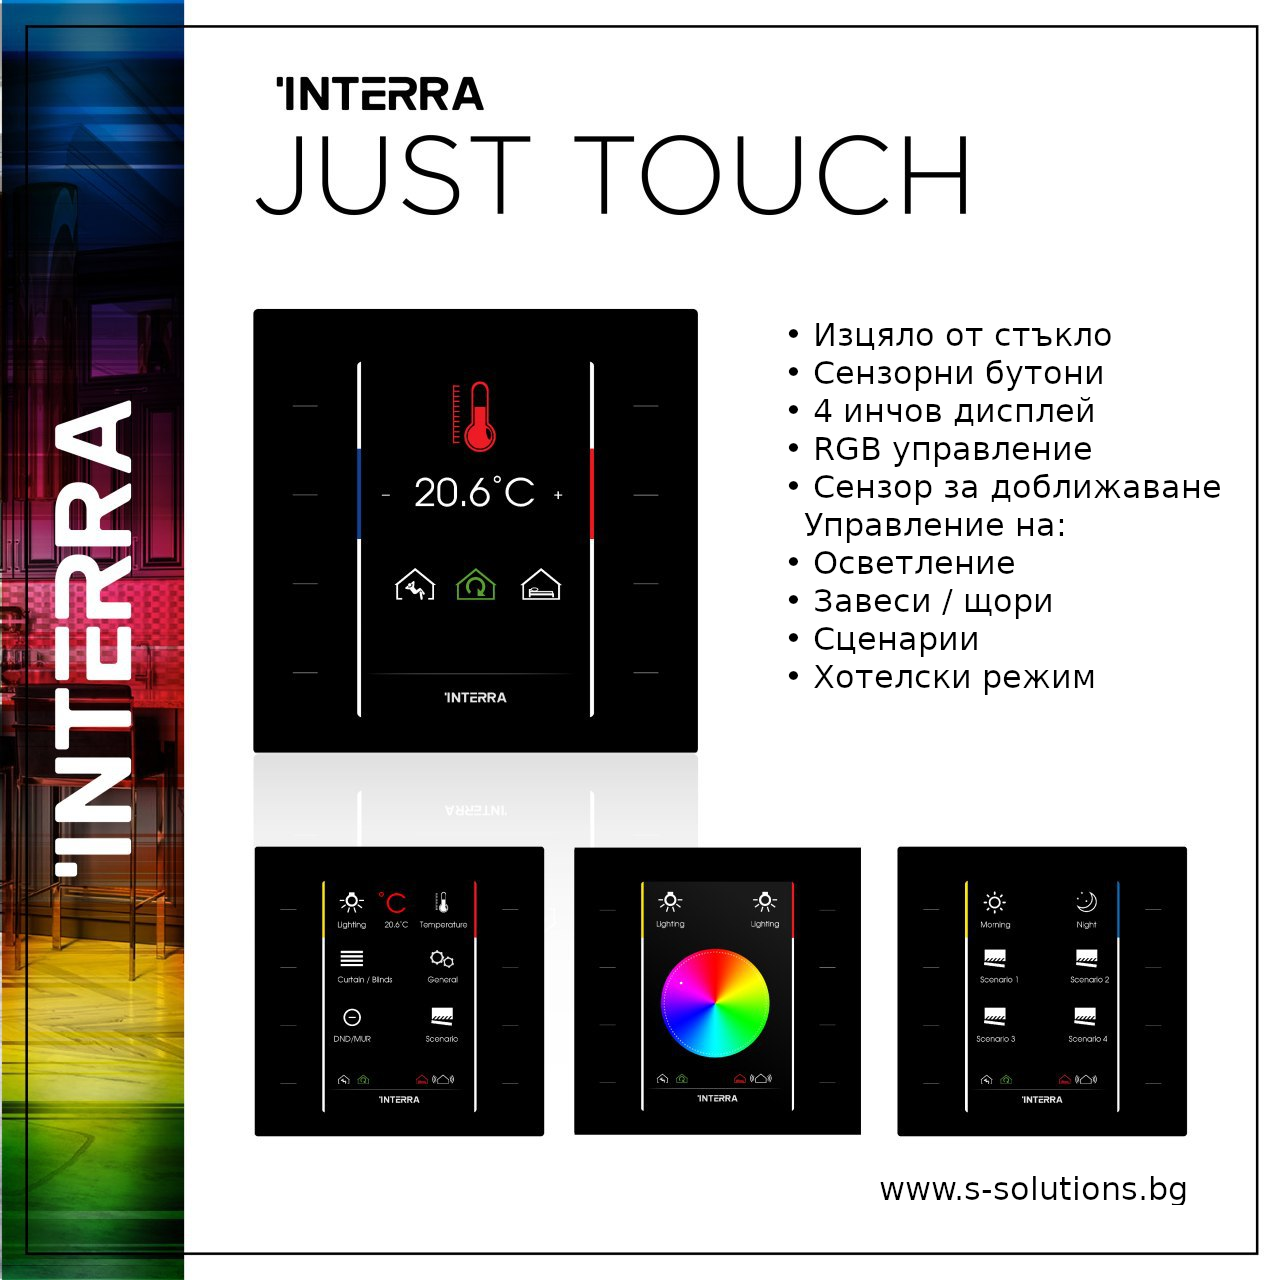 Interra Just touch